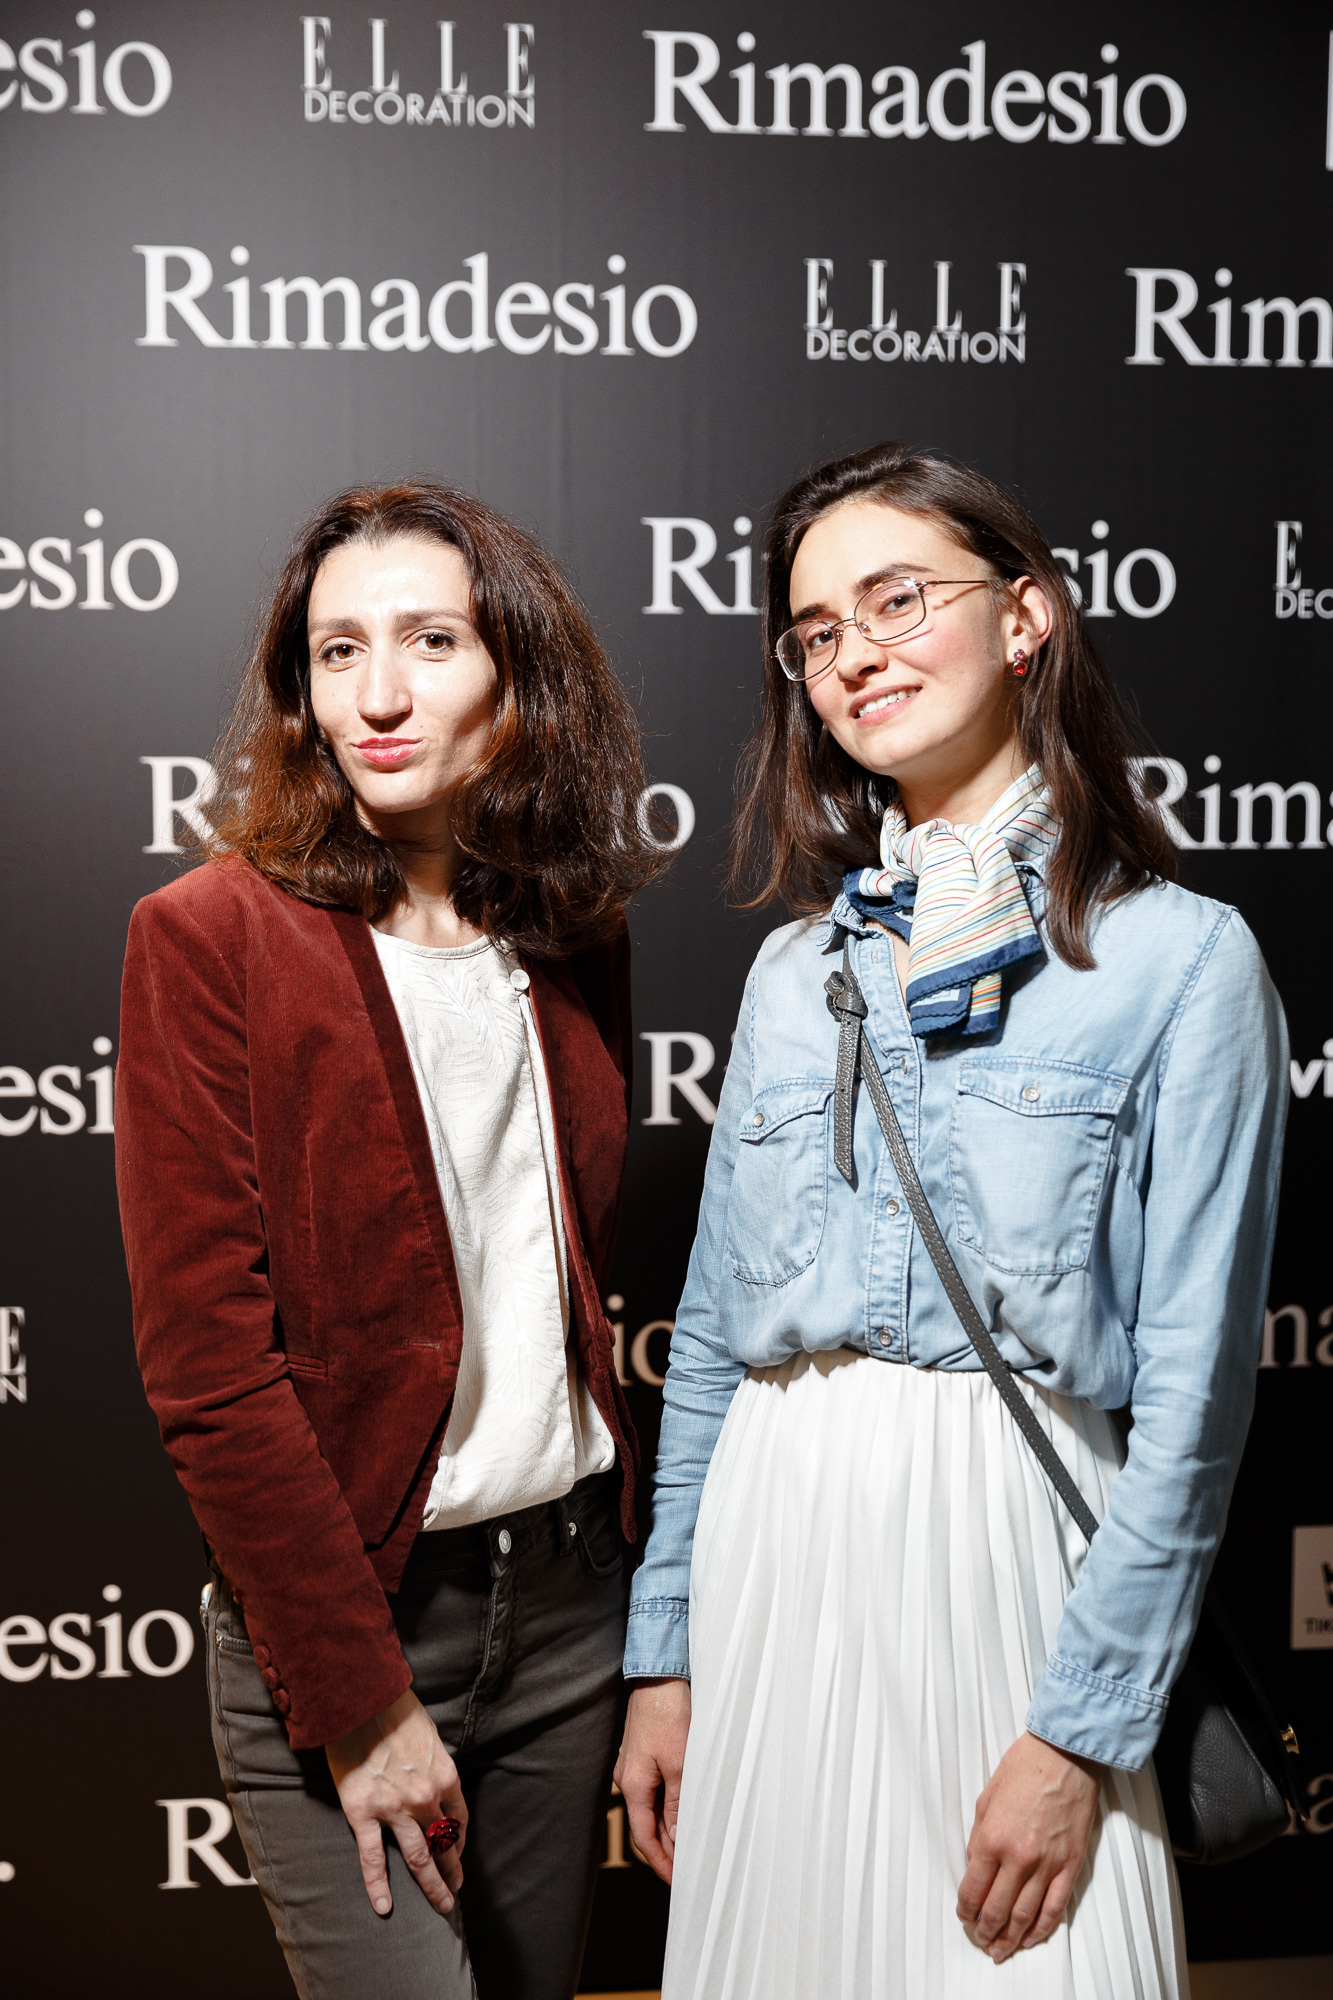 rimadesio-moscow-187